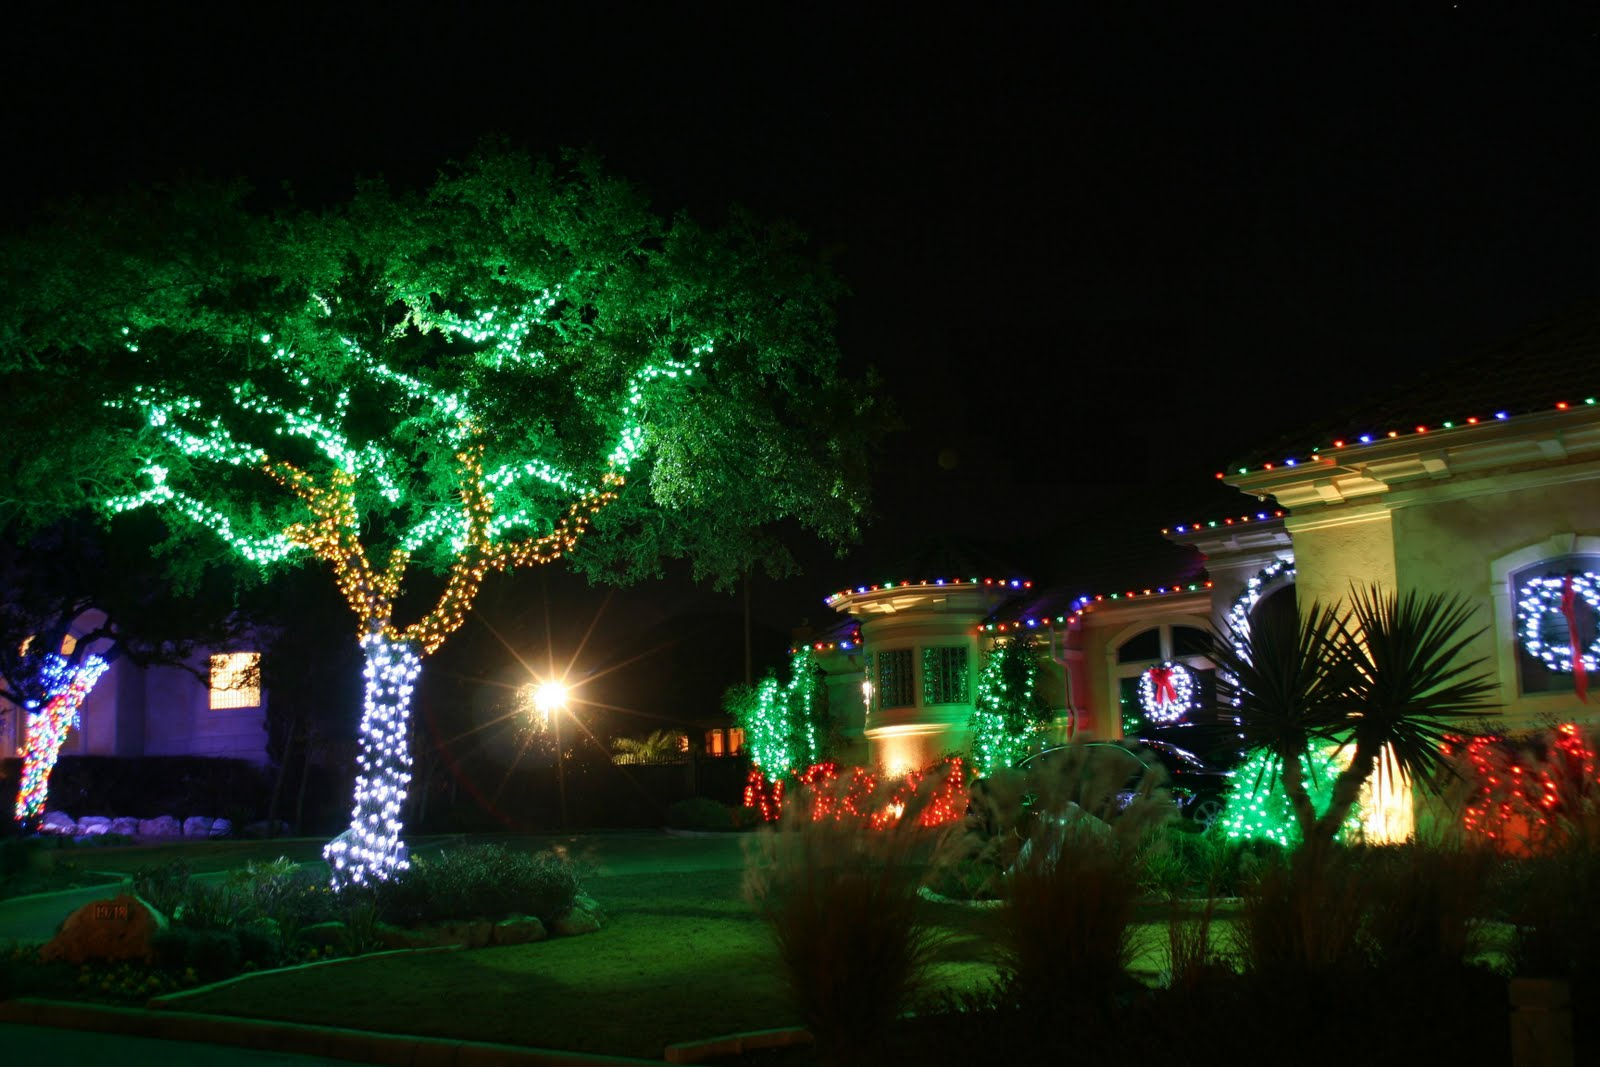 Christmas Decorating With Floodlights : Fascinating articles and cool stuff christmas outdoor